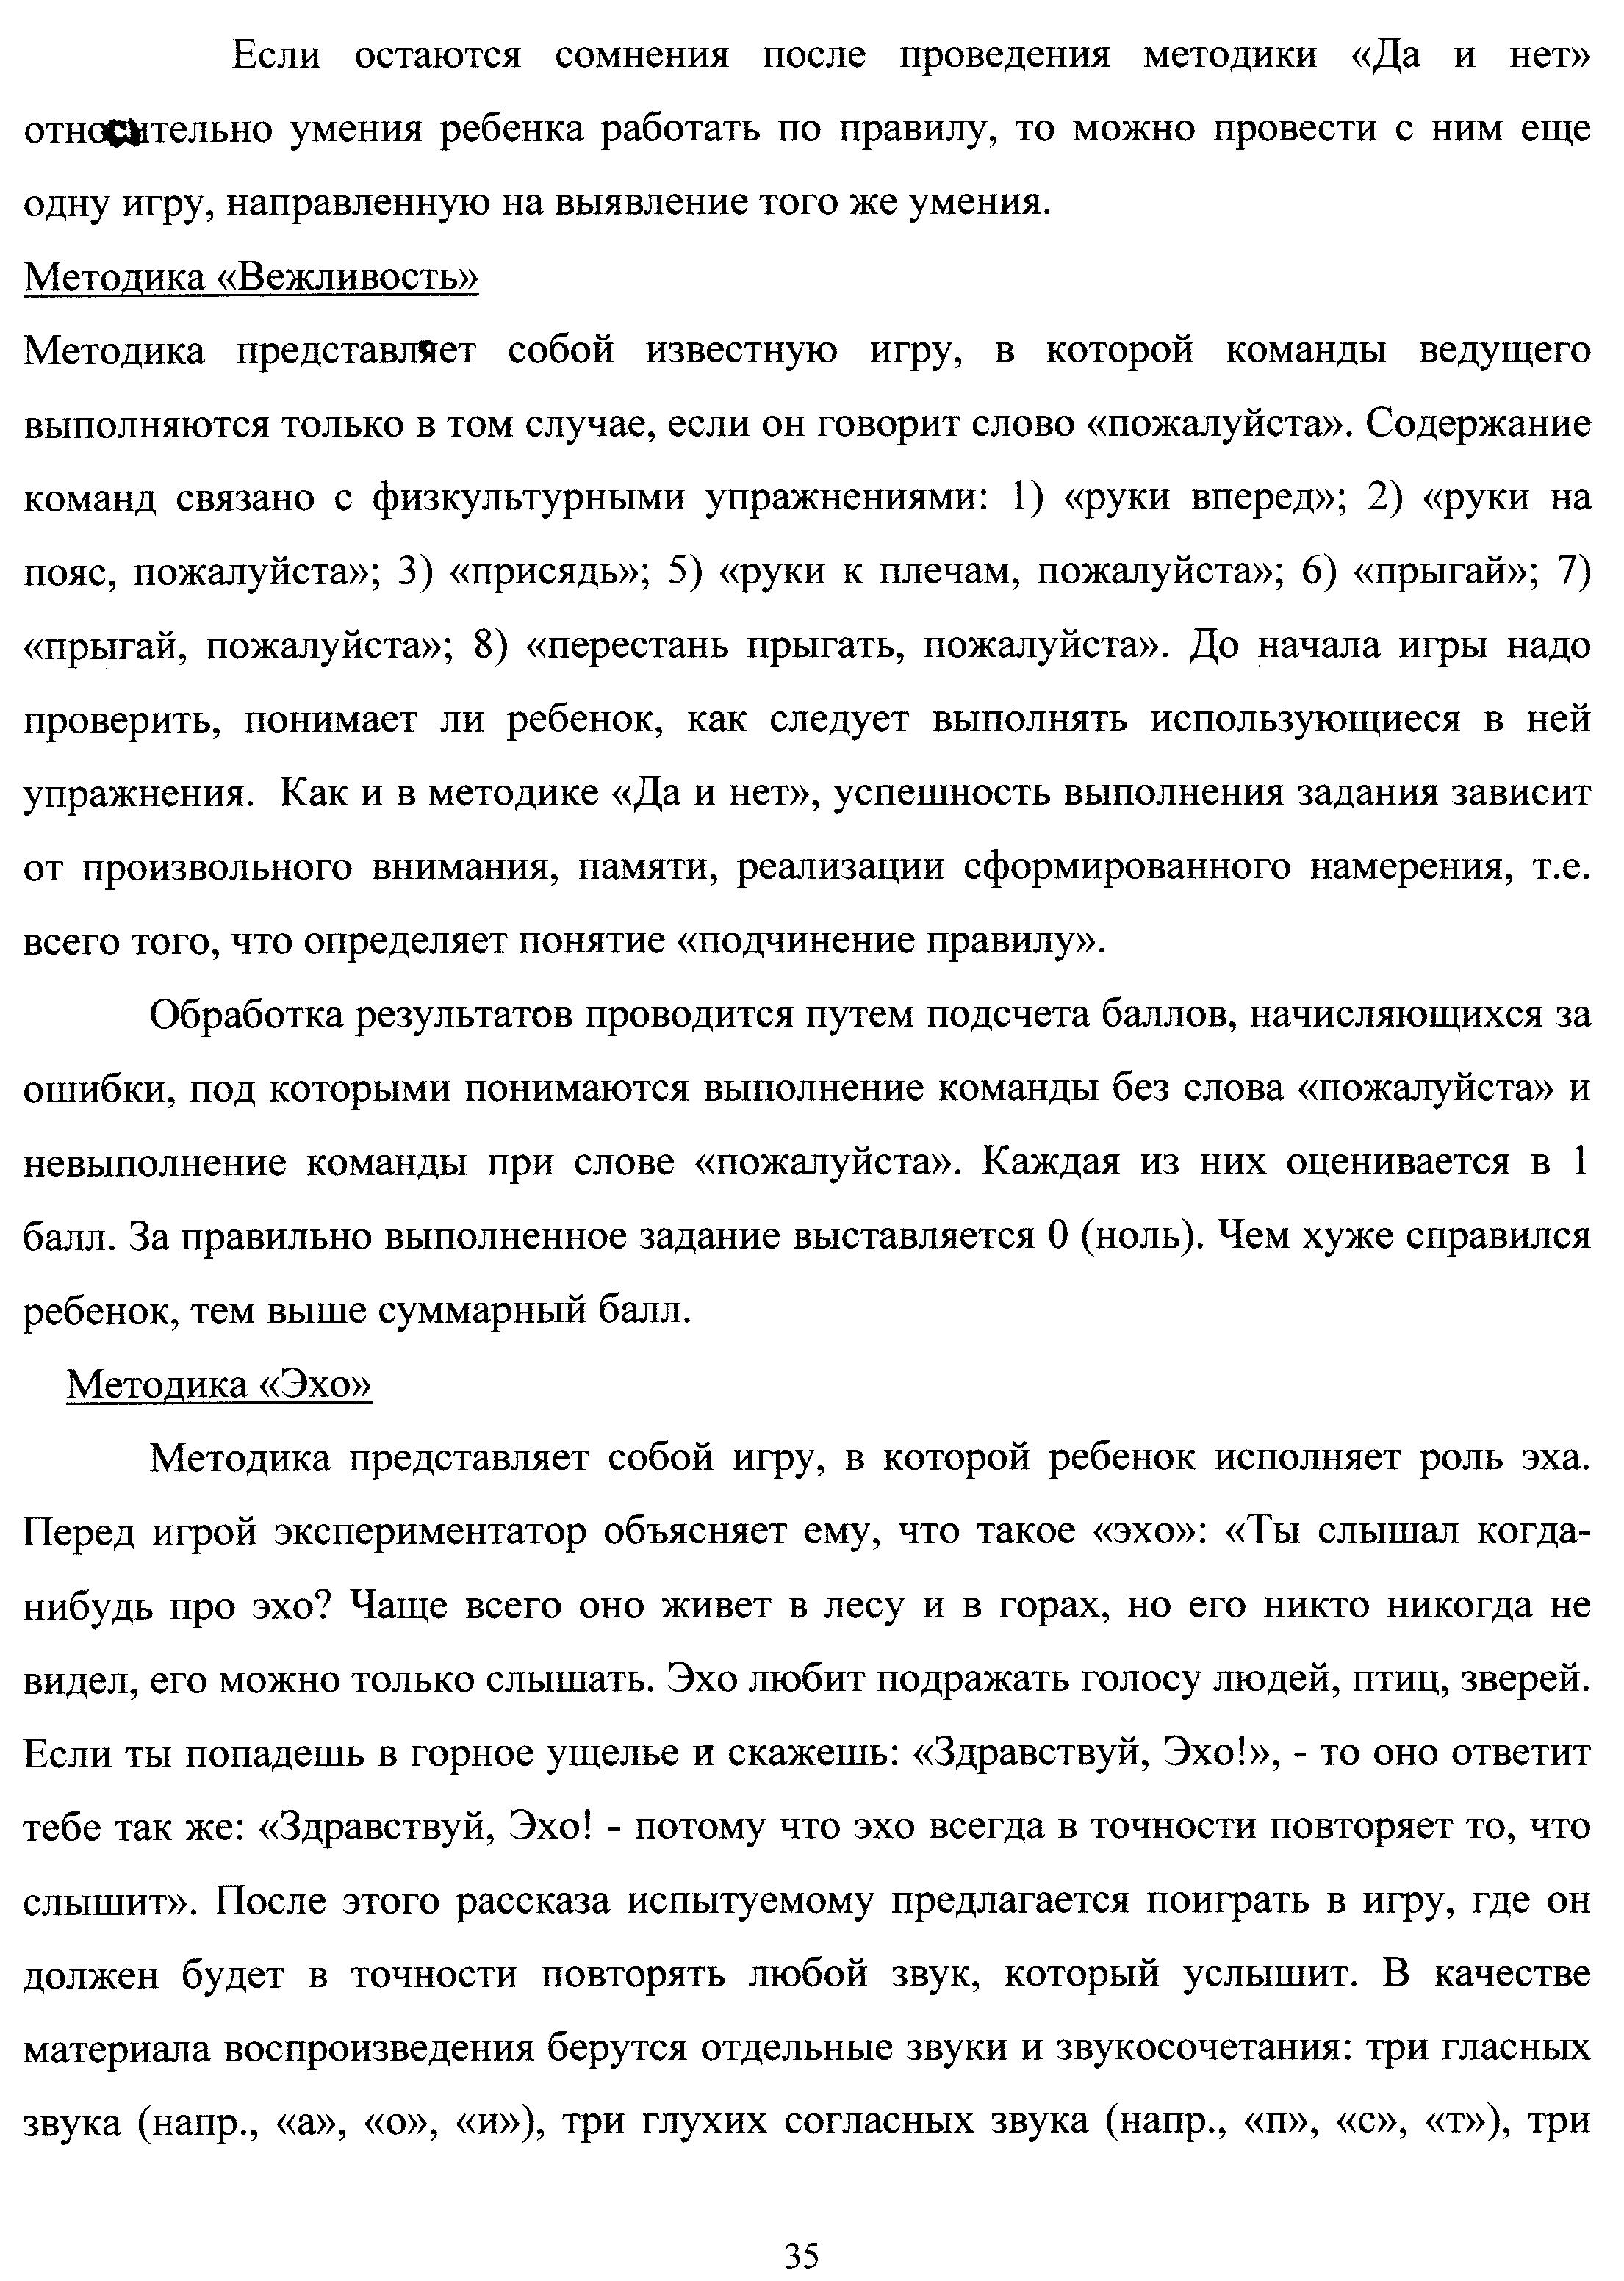 C:\Users\ЛАРИСА\Documents\Scanned Documents\Рисунок (139).jpg